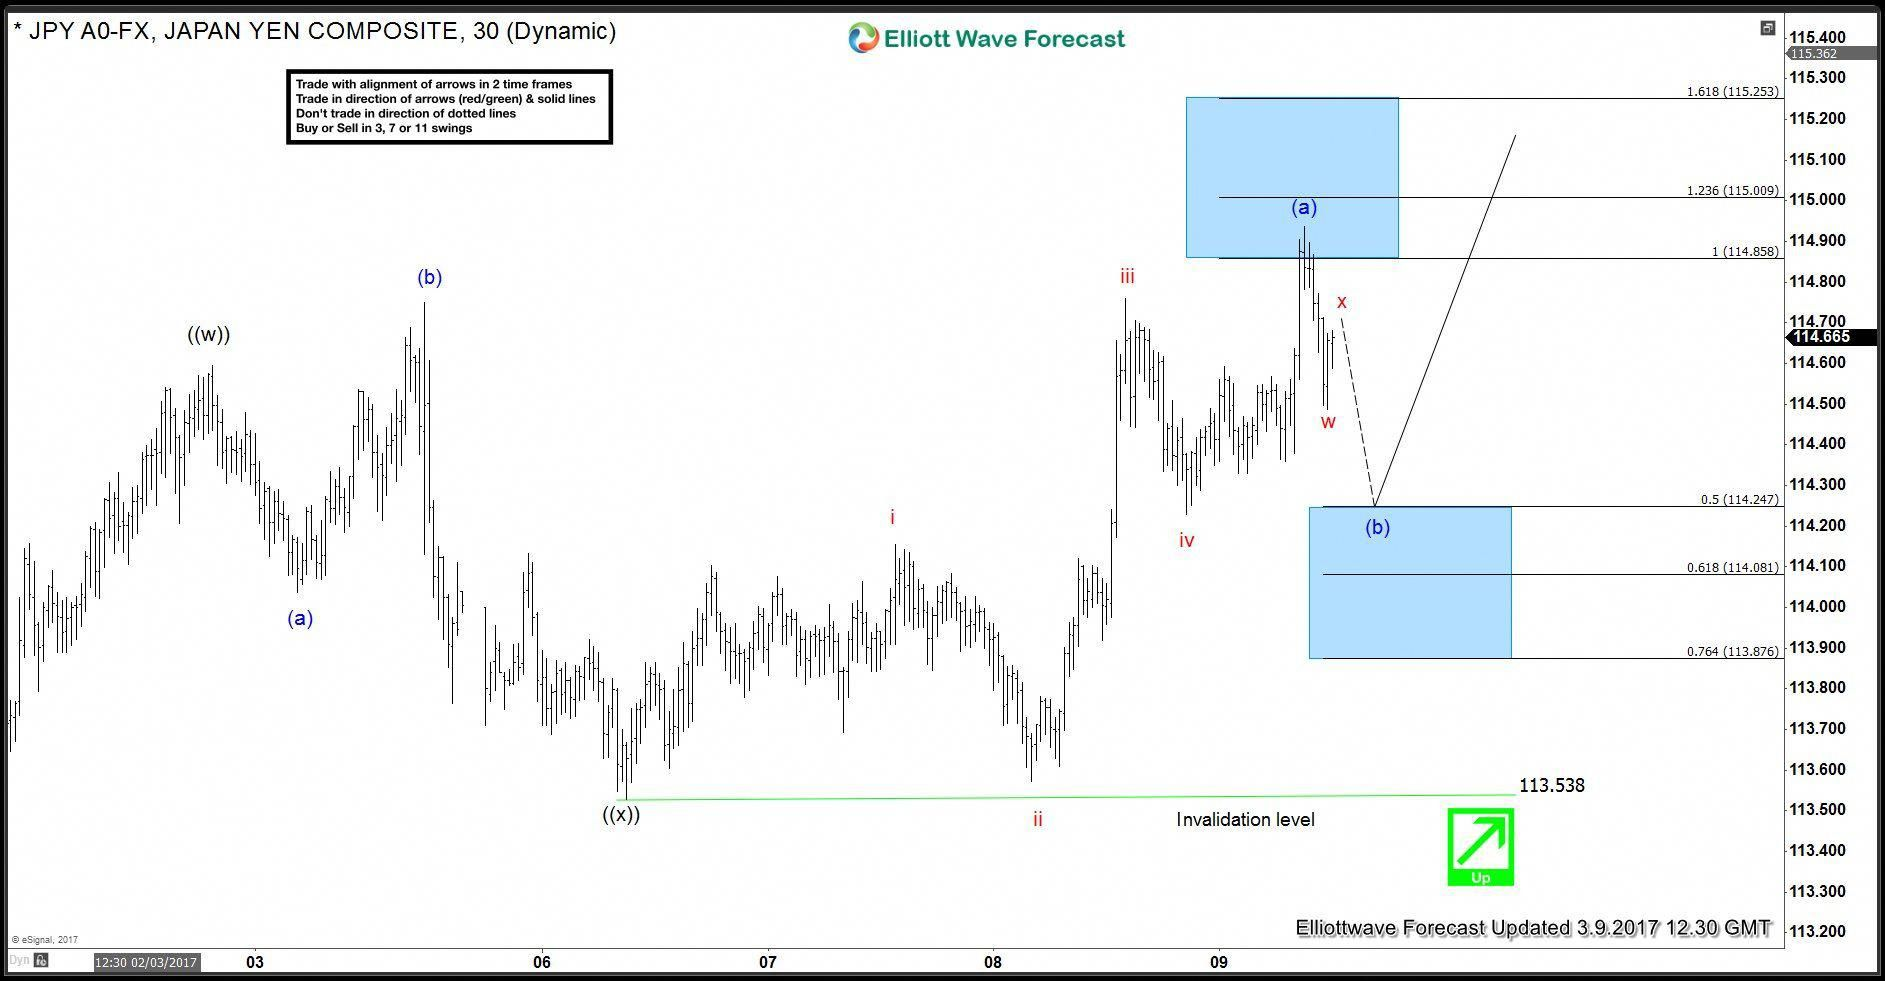 Follow This Image To Learn More Elliott Wave Stock Market Tips